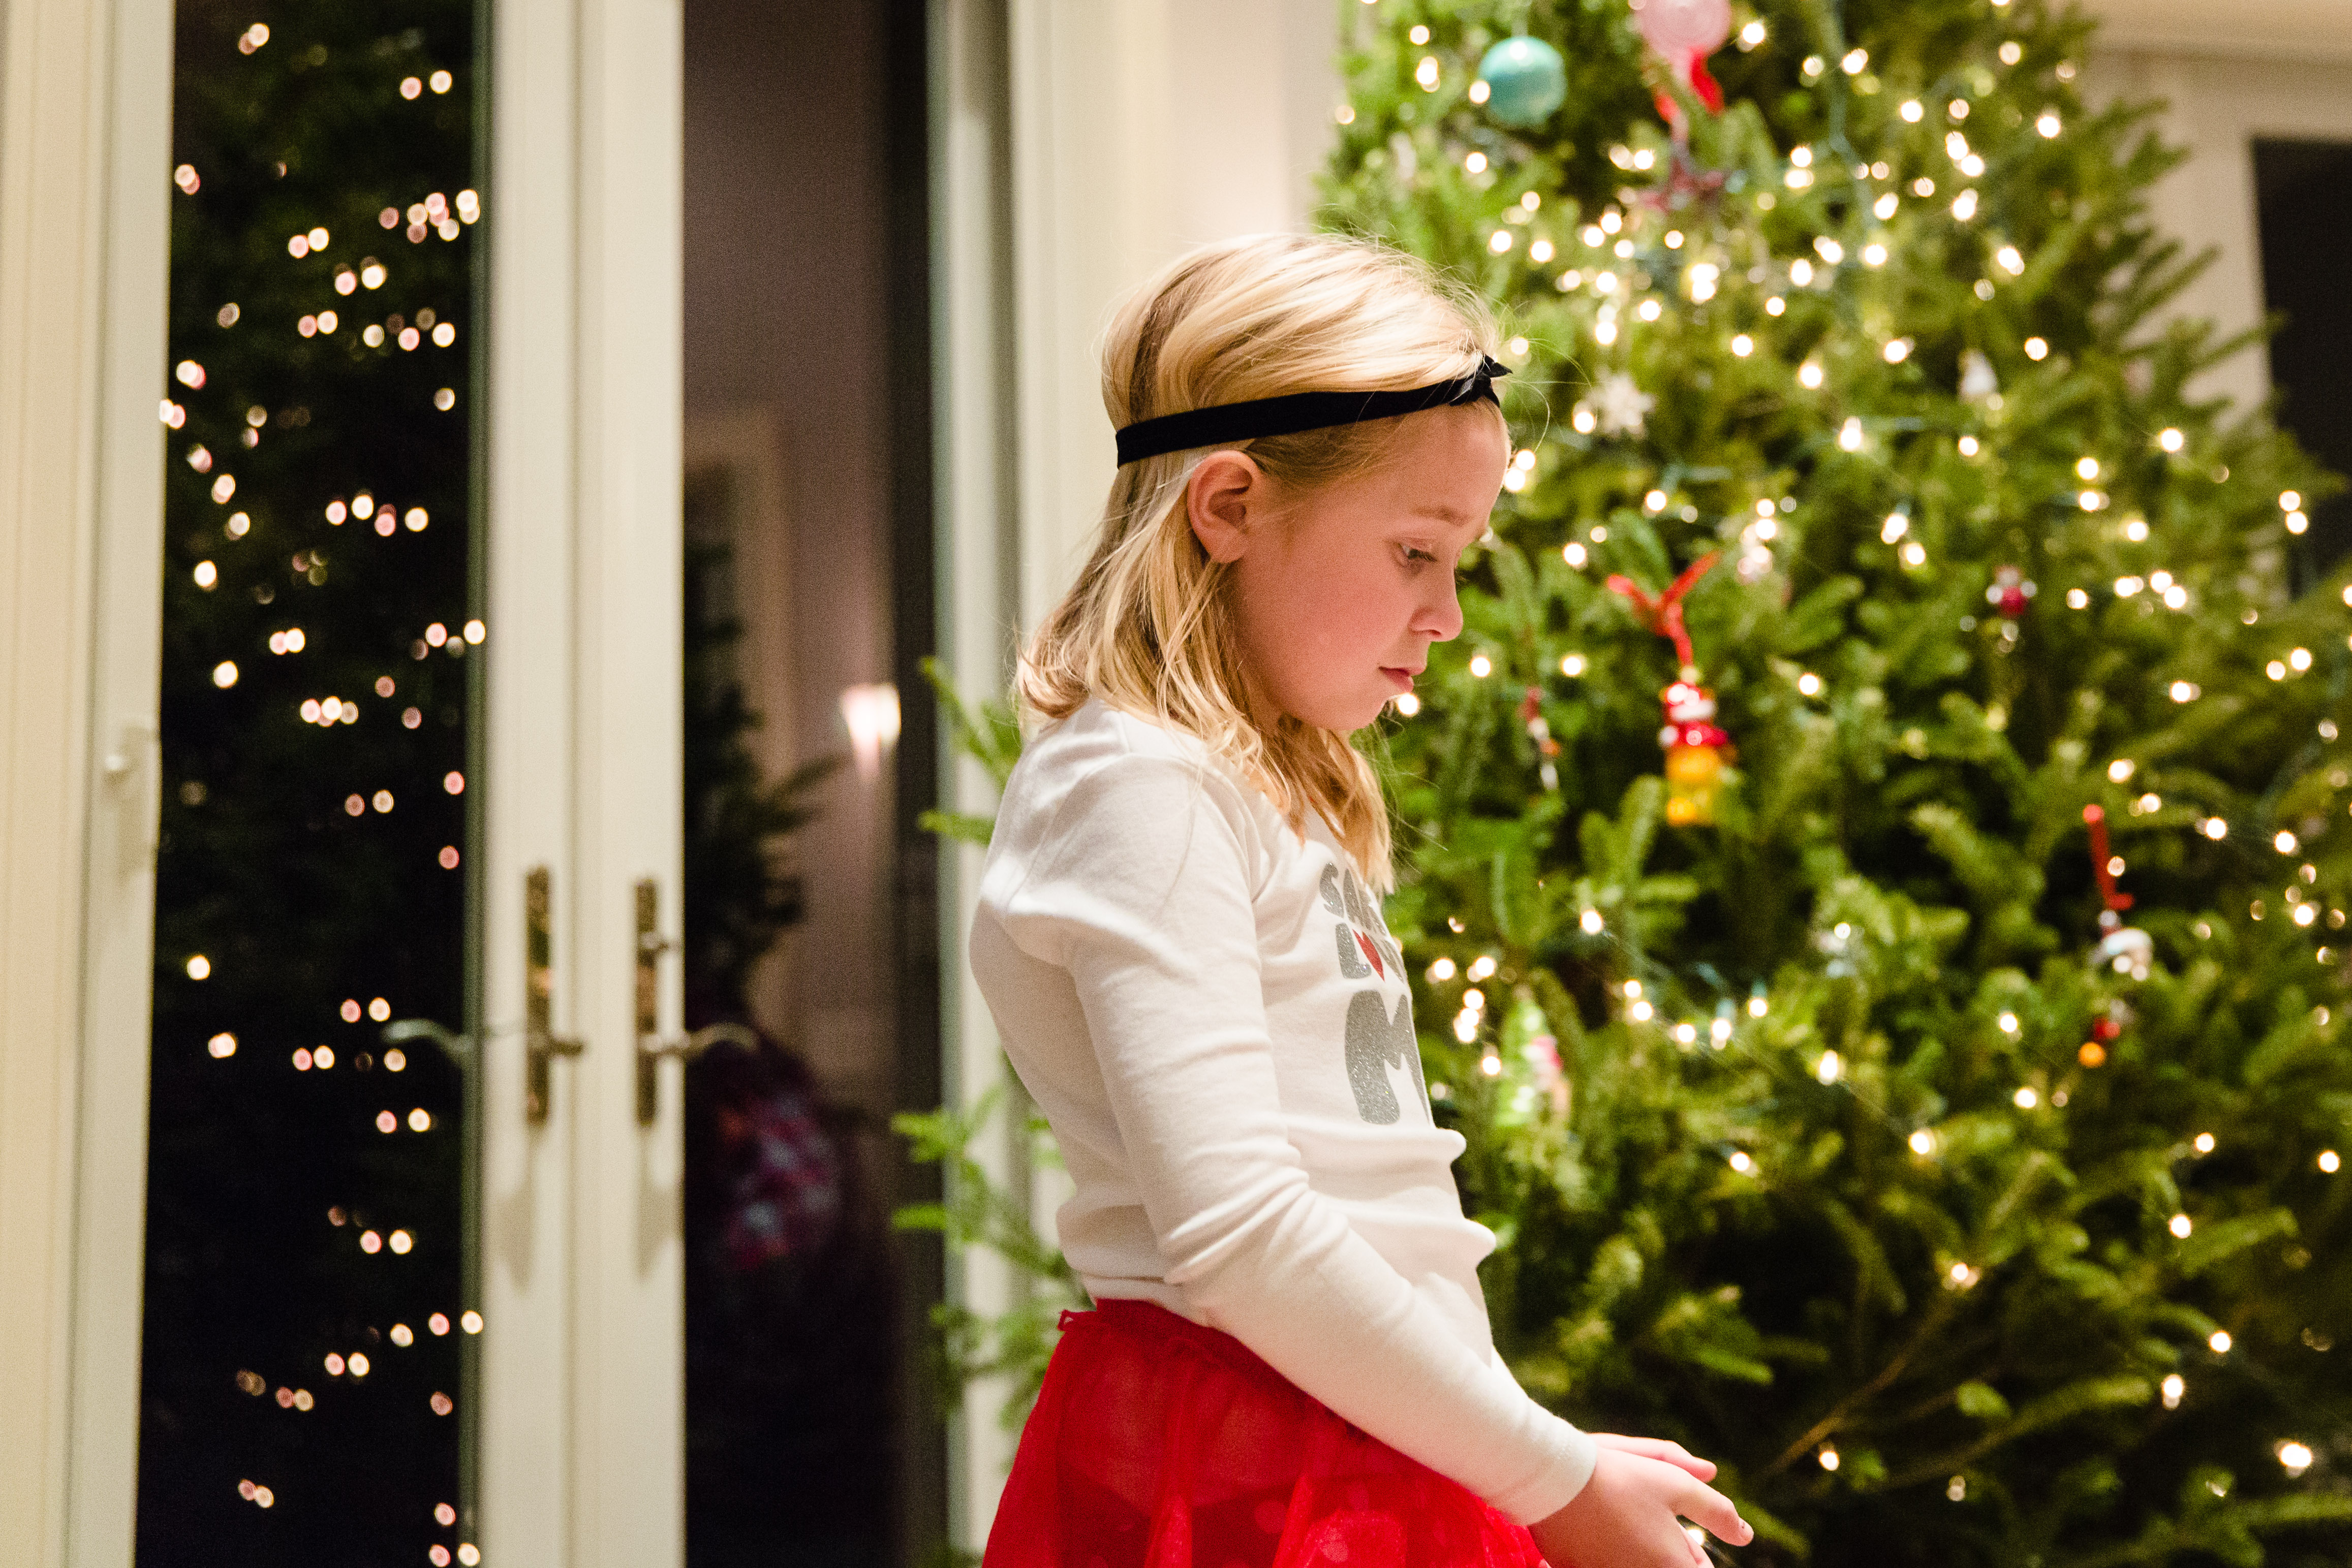 Little girl looking sad with christmas tree in background